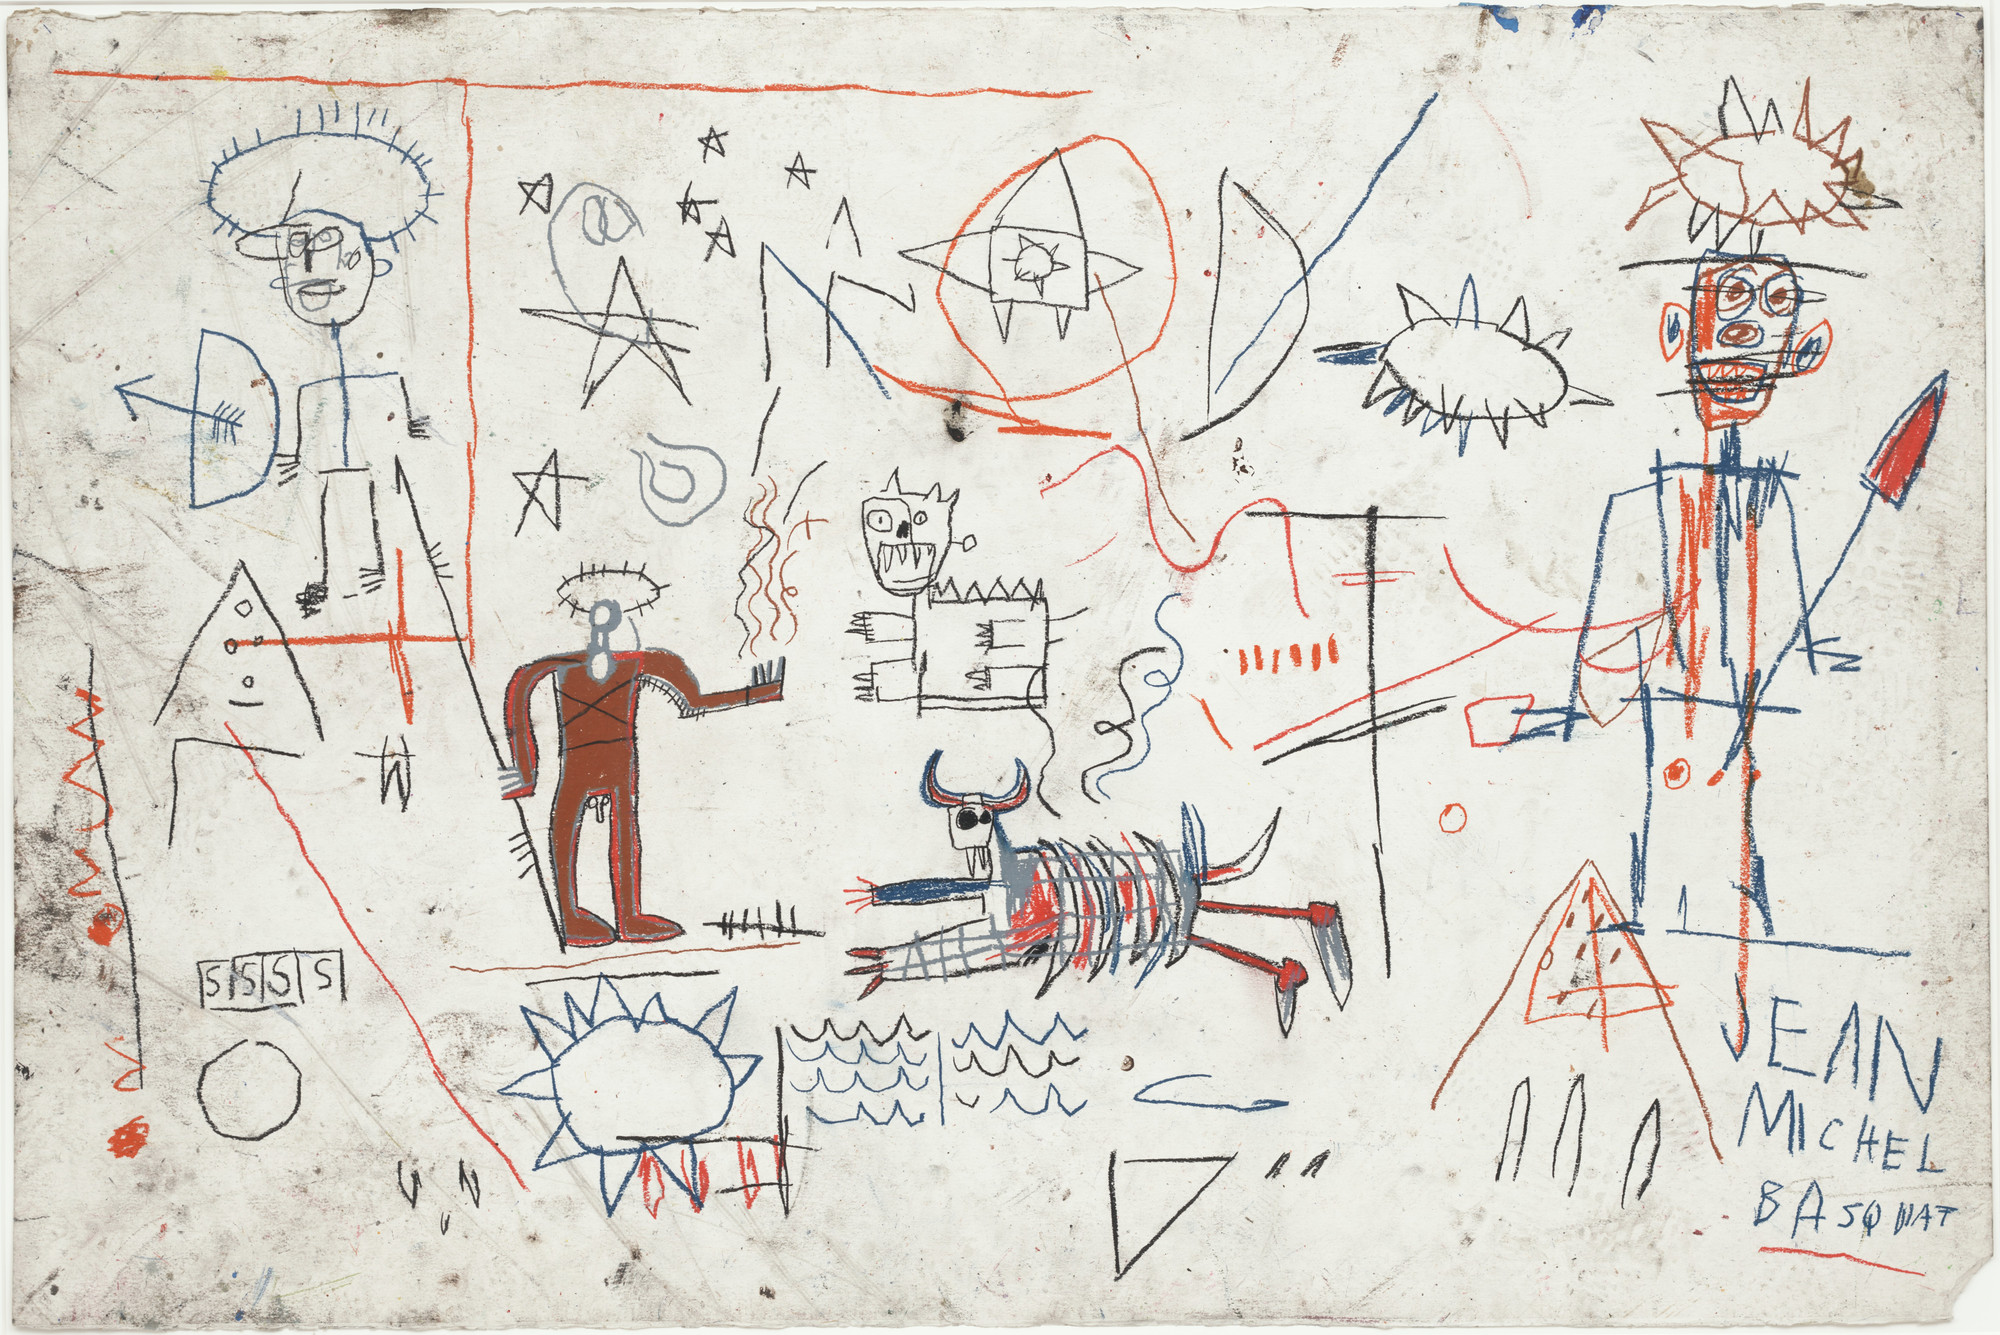 Jean-Michel Basquiat. Untitled. 1981